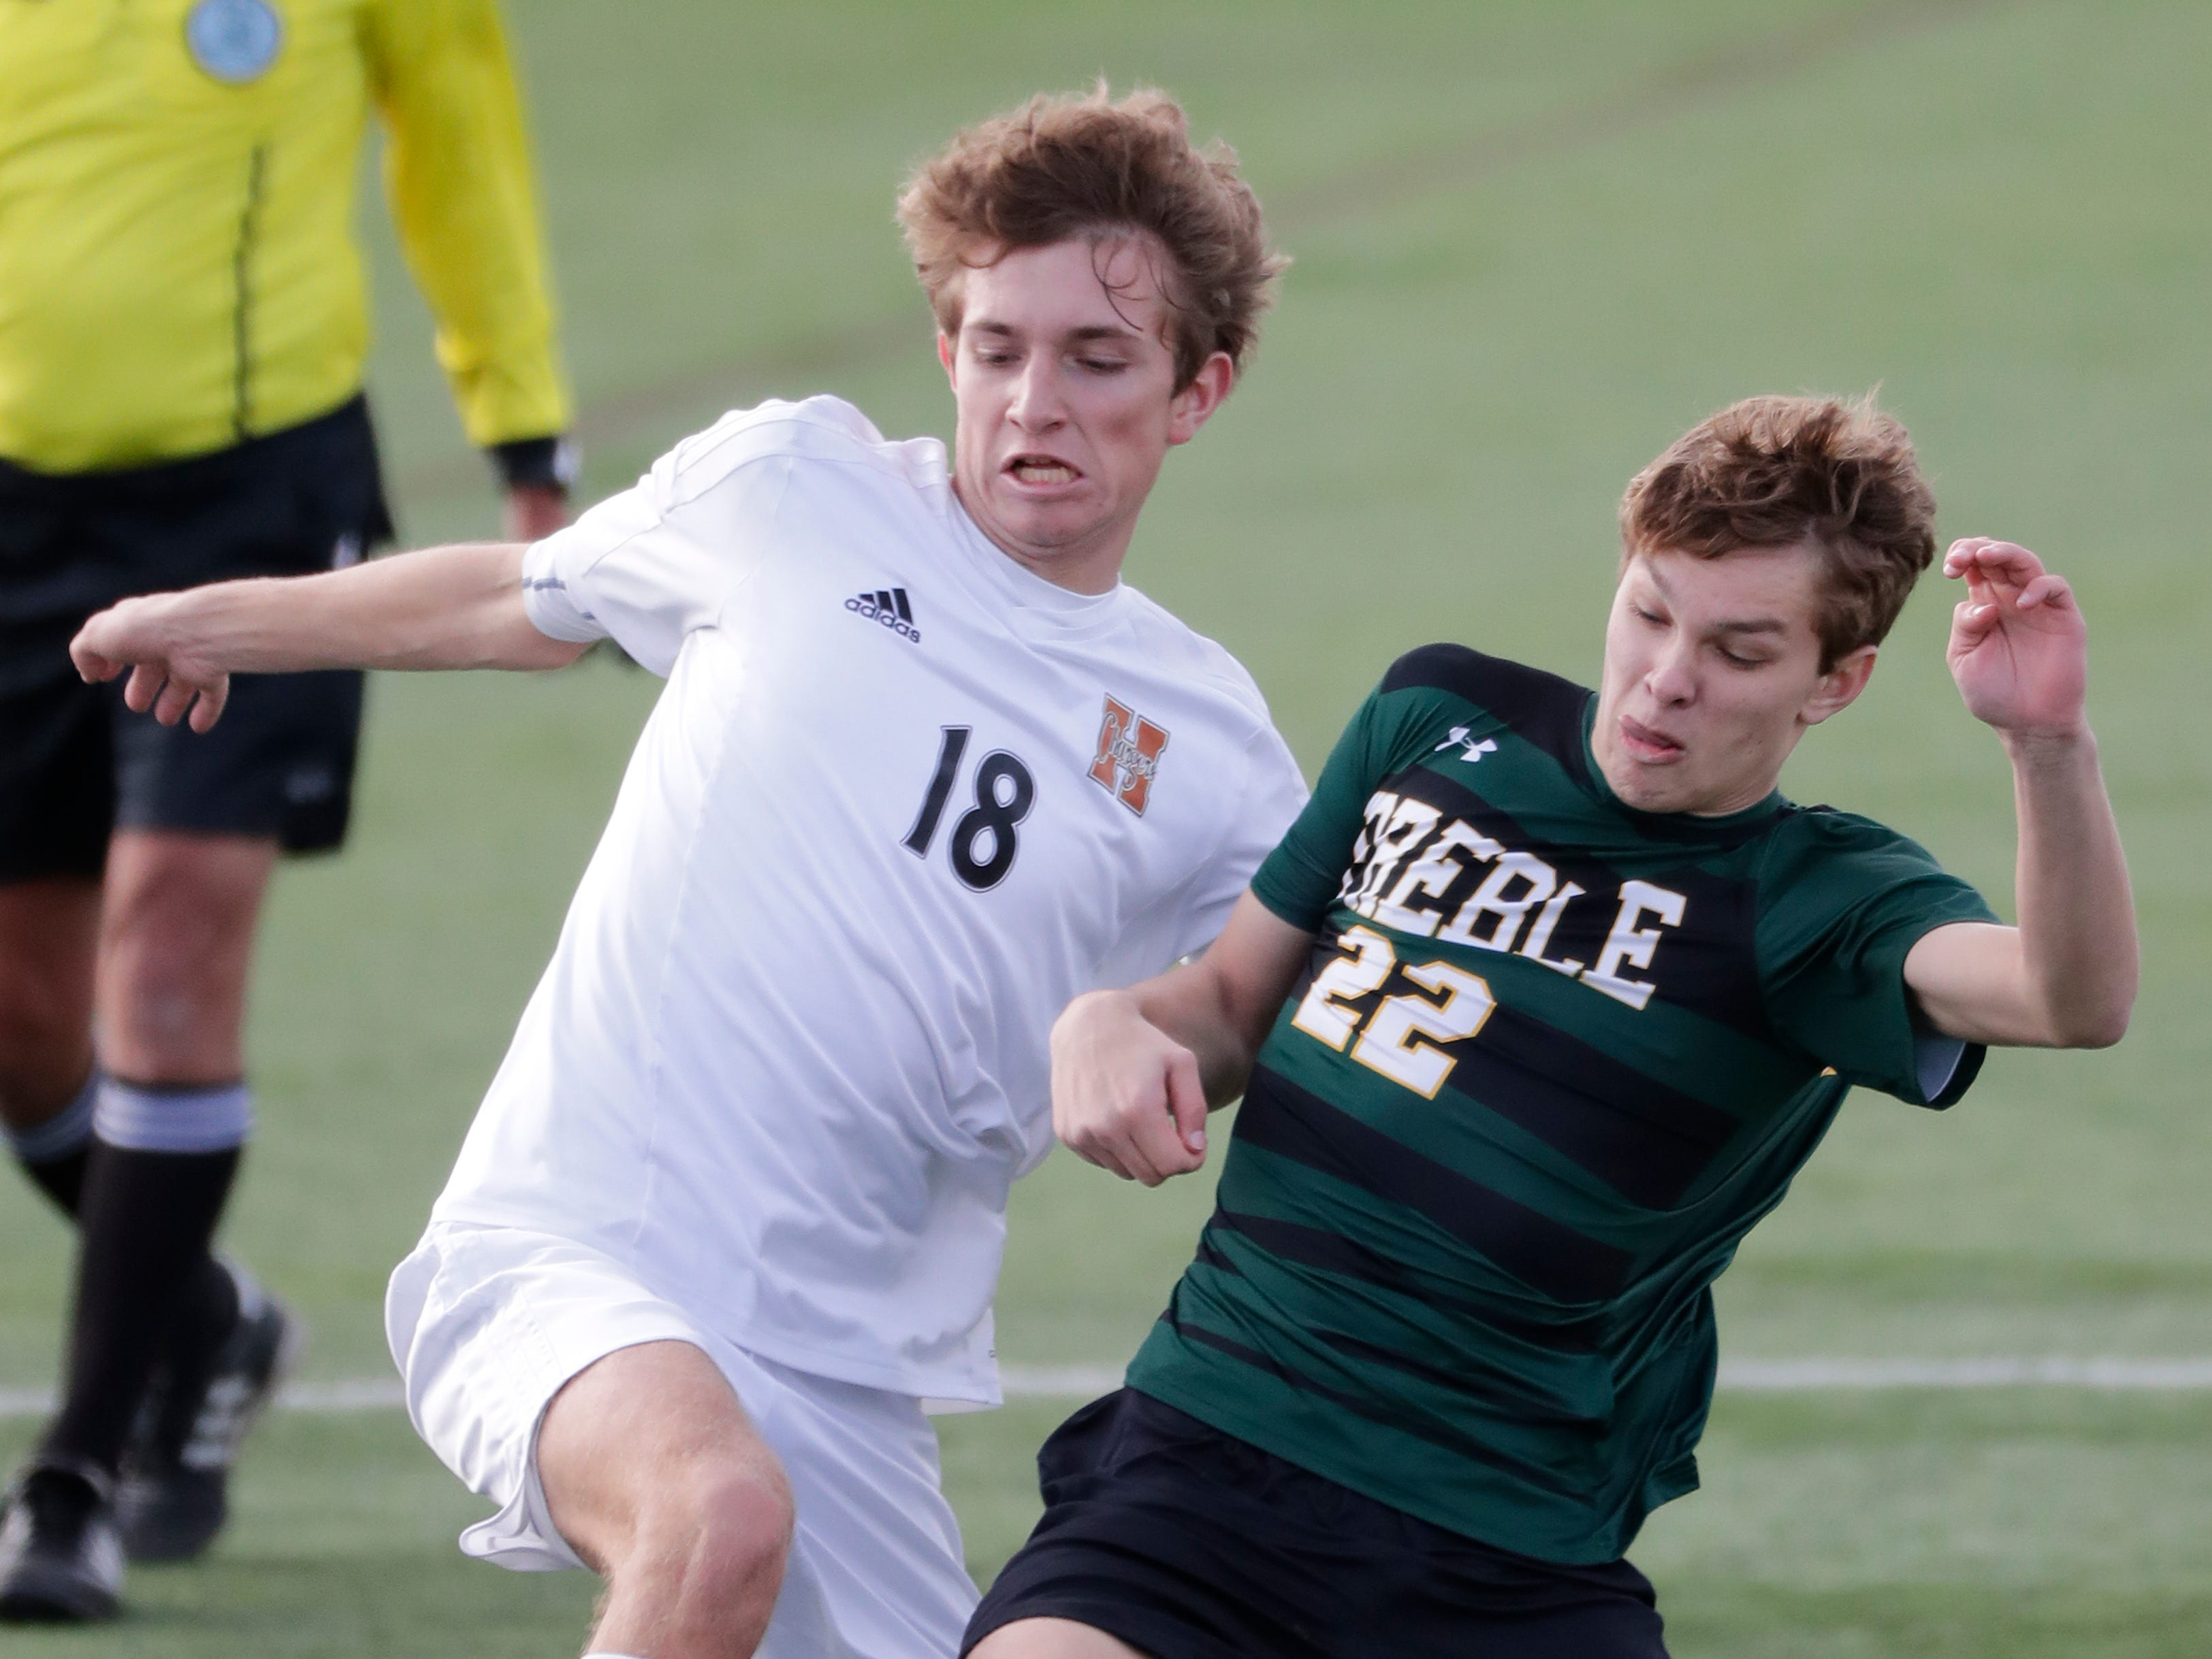 Green Bay Preble High School's Evan Vogel (22) defends against Hamilton High School's Caden Etzel (18) during their WIAA Division 1 state semifinal boys soccer game Friday, November 2, 2018, at Uihlein Soccer Park in Milwaukee, Wis.